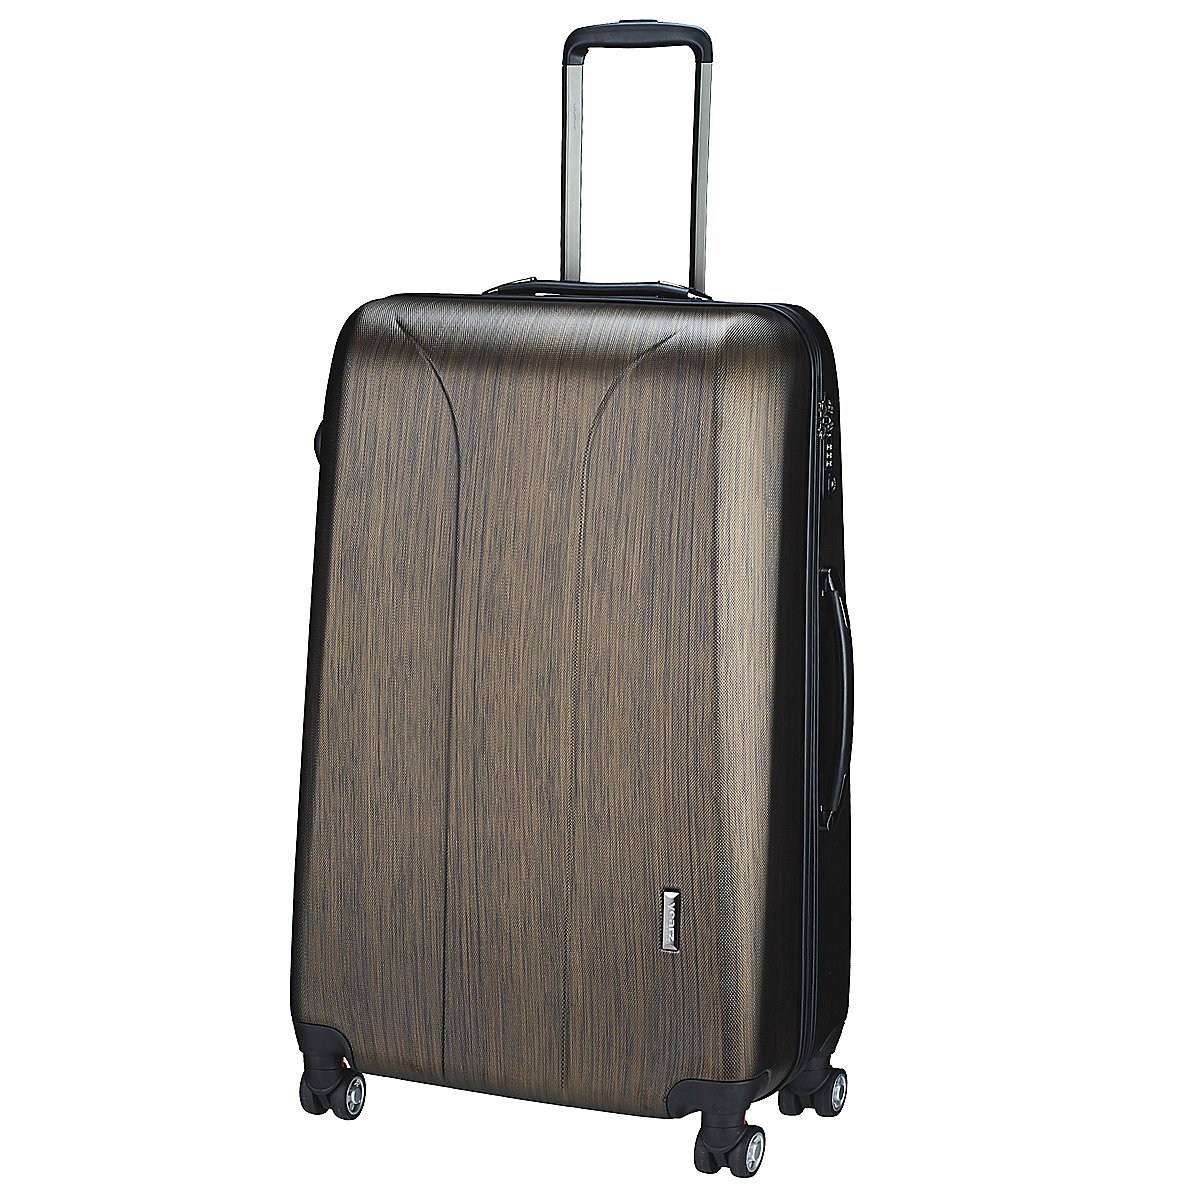 March 15 Trading New Carat 4-Rollen-Trolley 65 cm bronze brushed